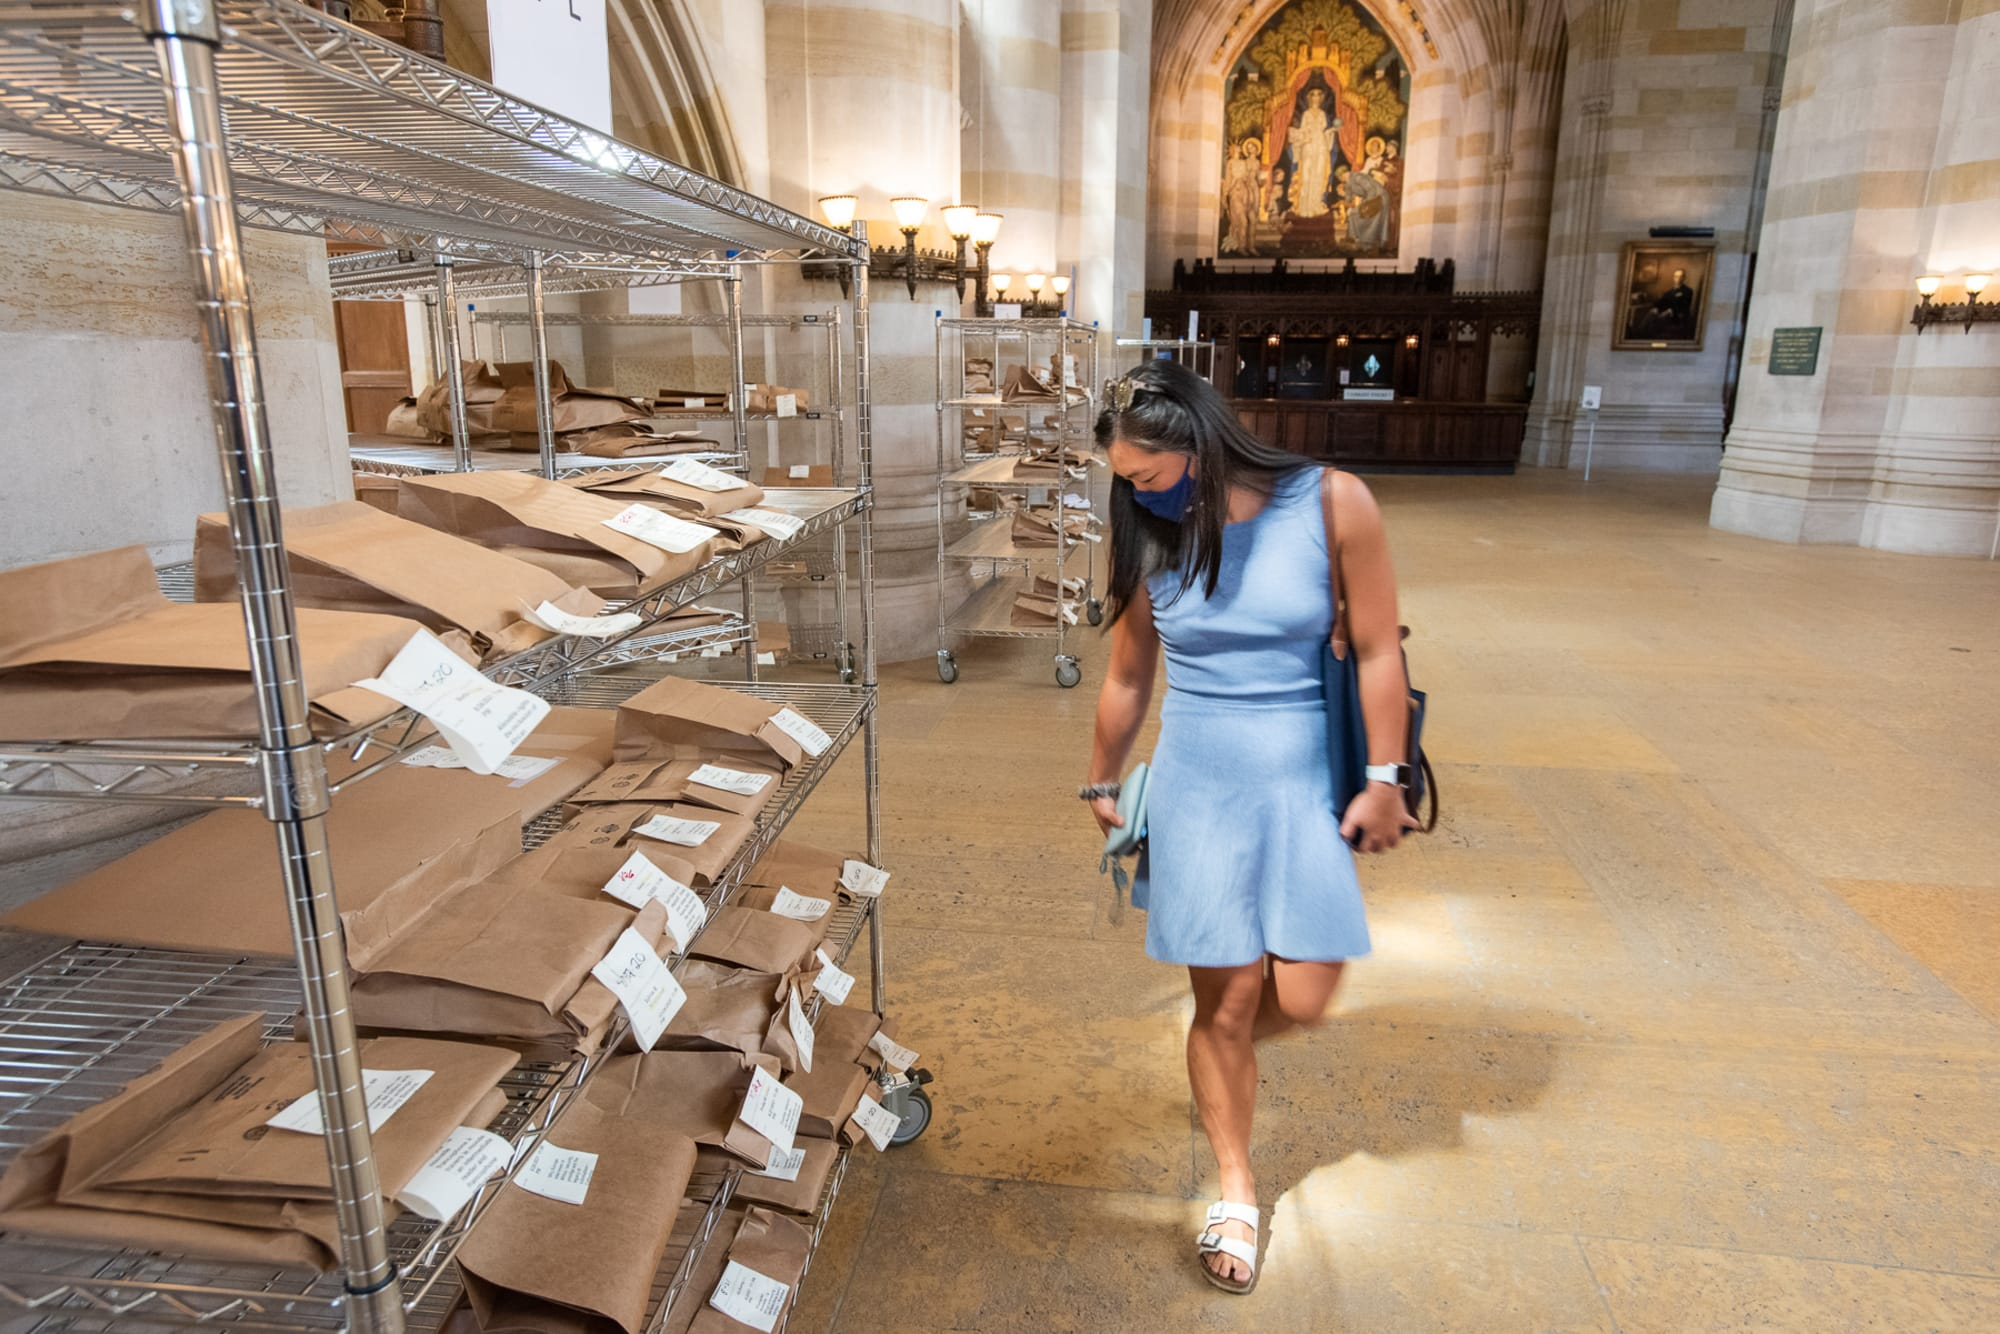 Woman in a blue dress looks at metal racks of brown paper bags in Sterling nave.  Photo by Mara Lavitt